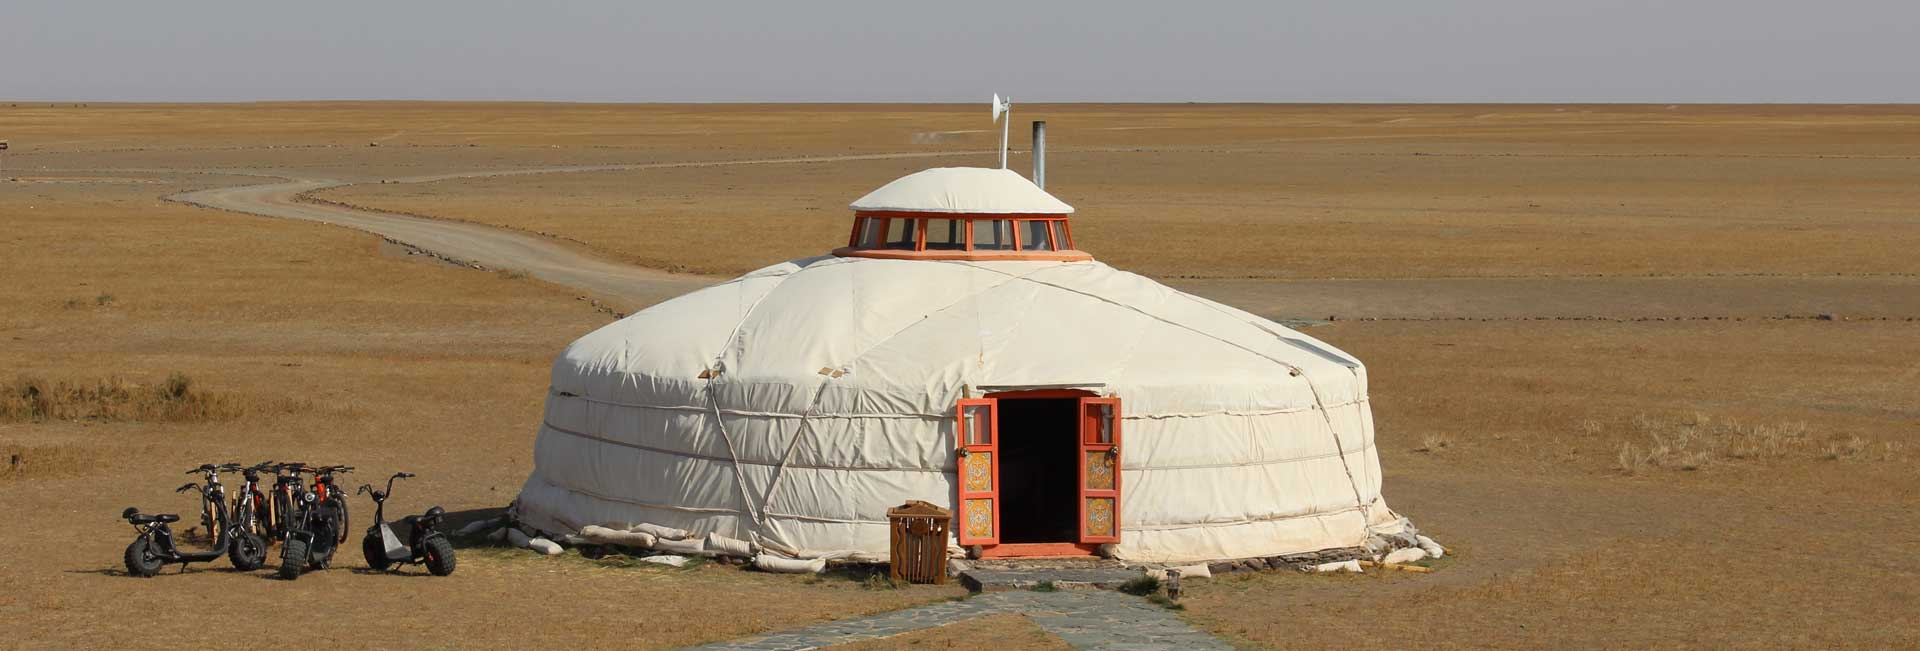 A ger on the Mongolian steppe. Photo credit: Tia Low